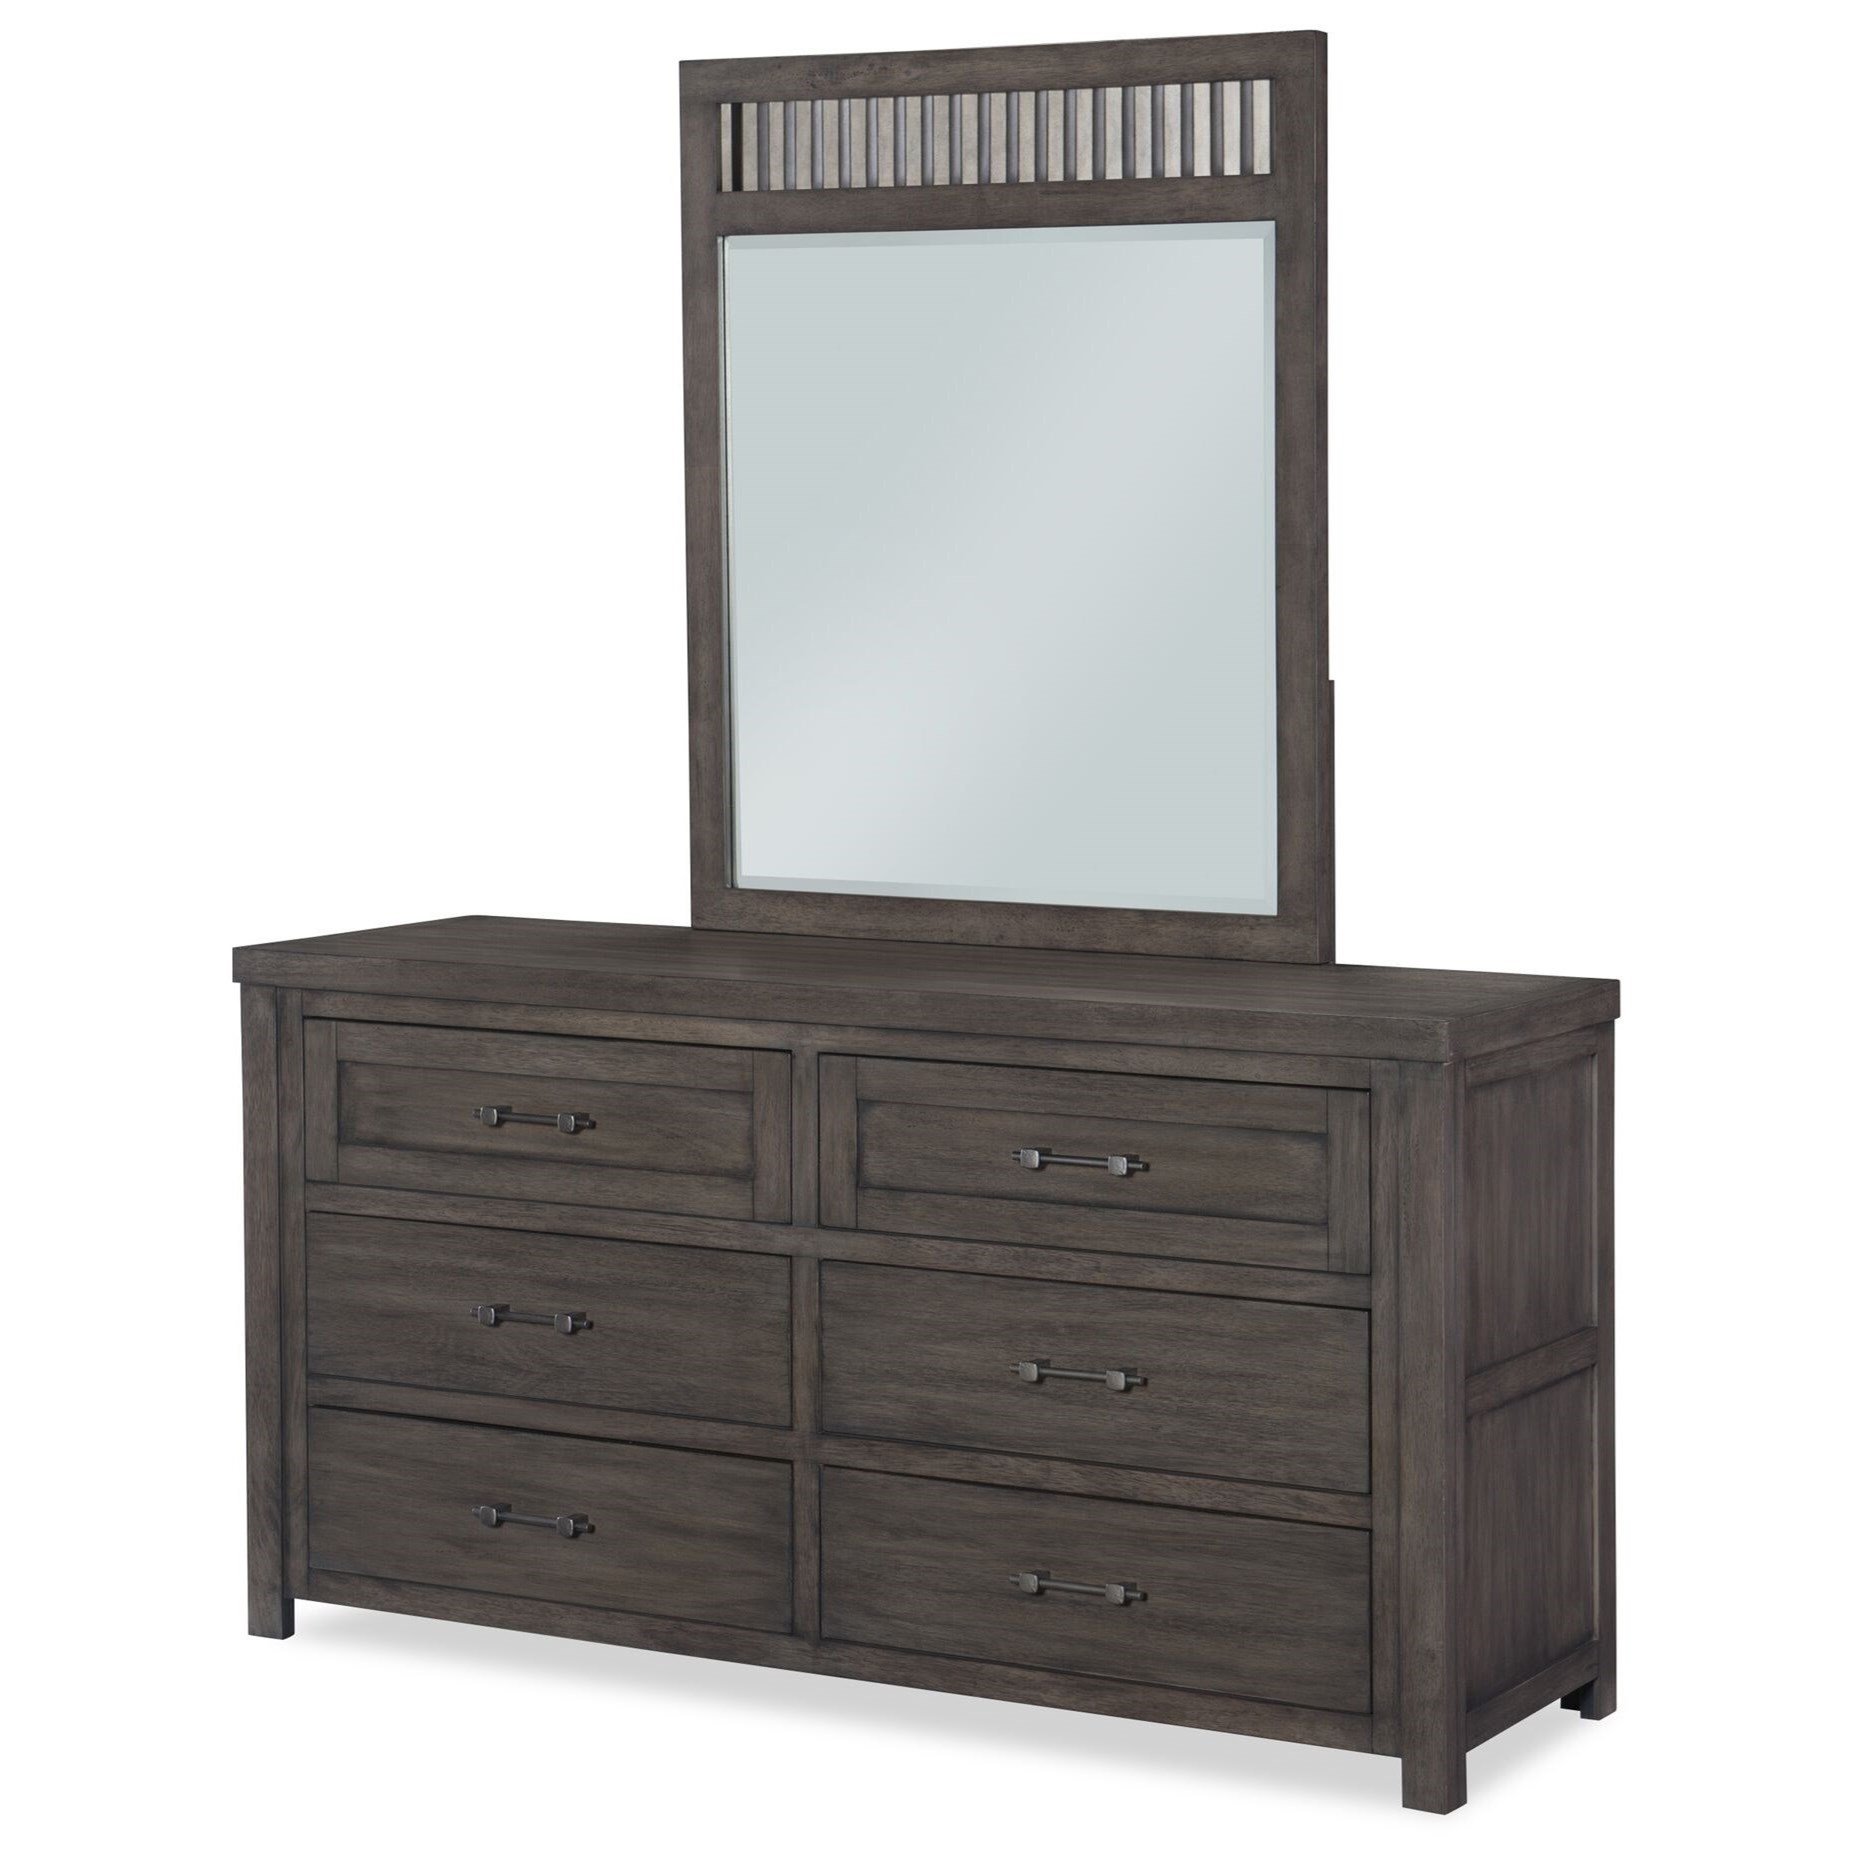 Bunkhouse Dresser and Mirror by Legacy Classic Kids at Johnny Janosik